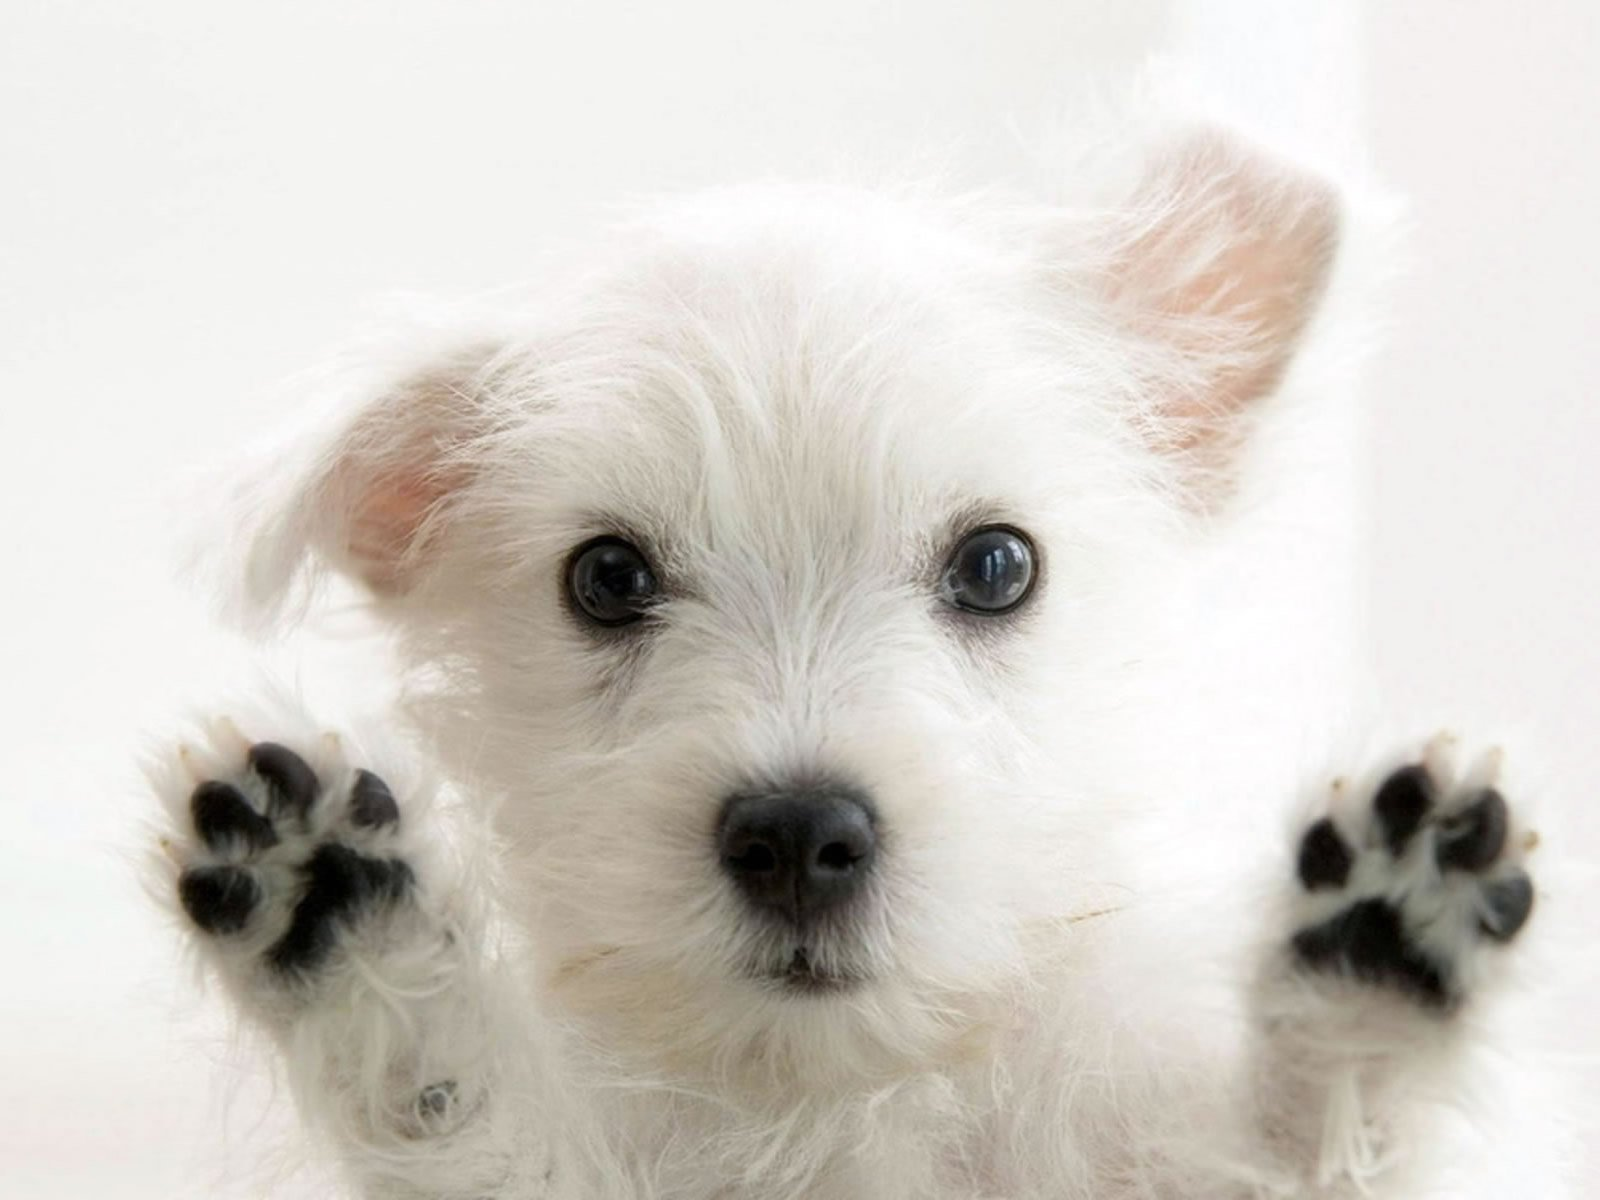 Puppy Dog HD Wallpapers Download Wallpaper DaWallpaperz 1600x1200